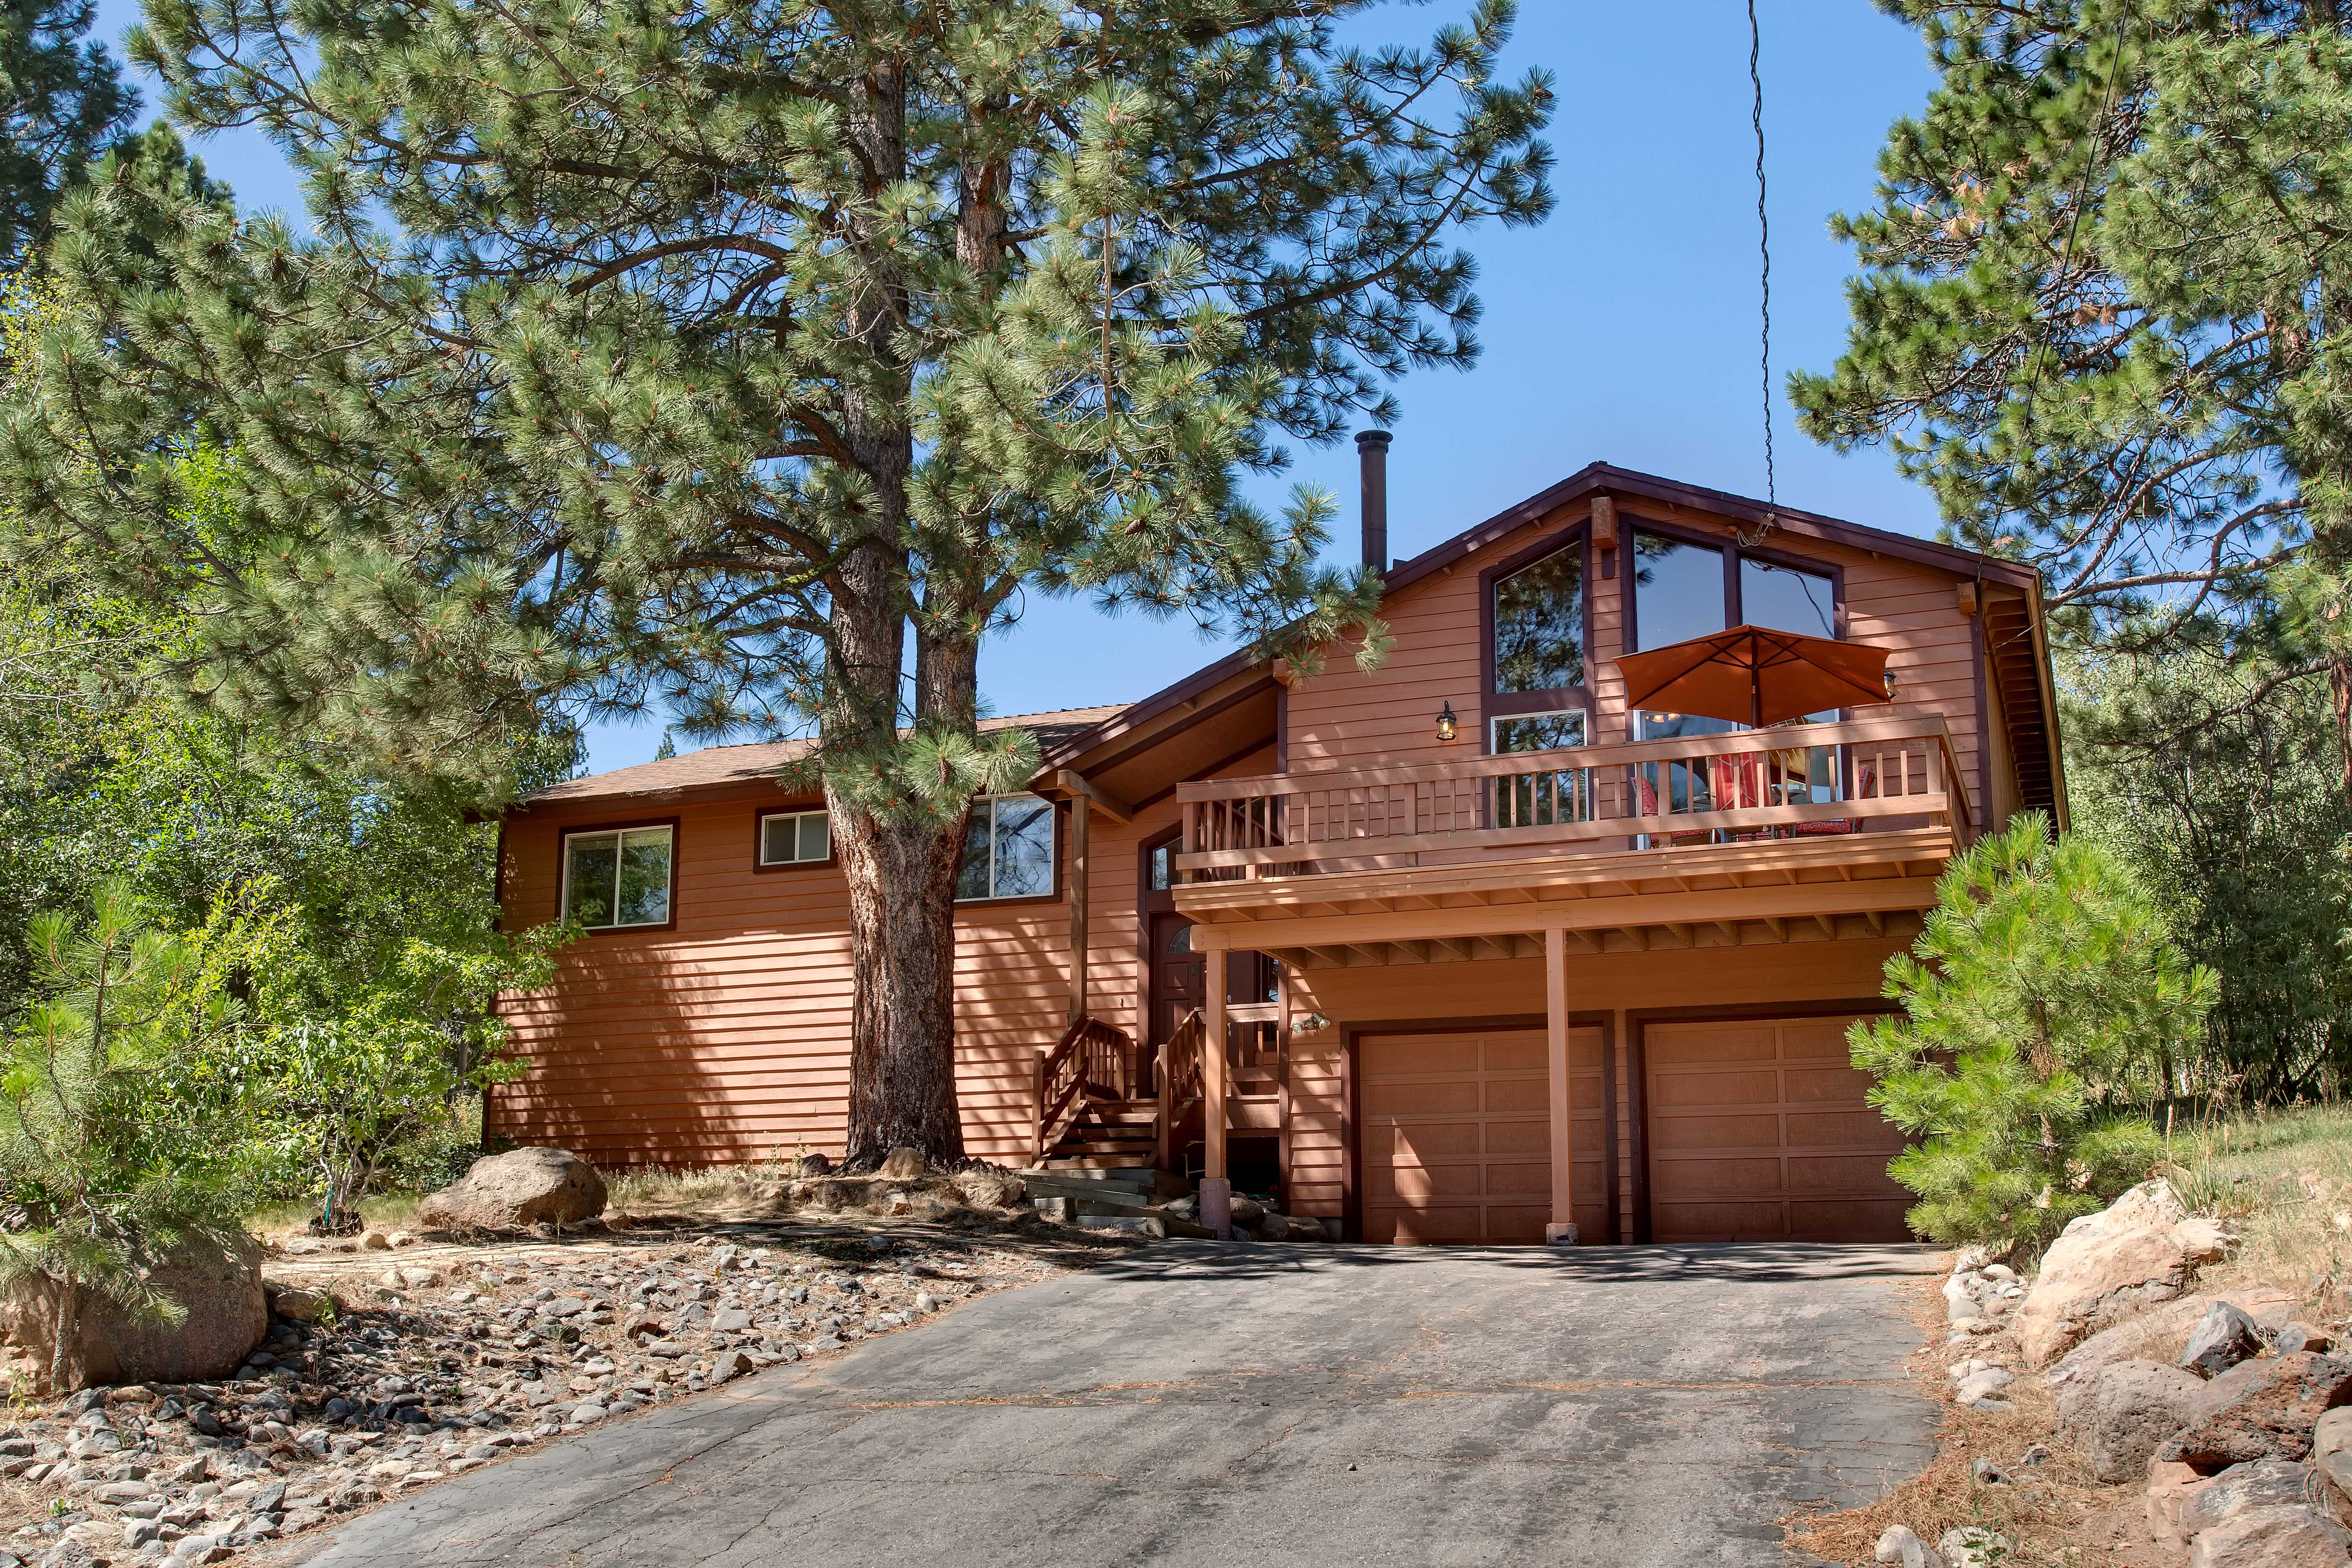 Glenshire Home for Sale Truckee CA